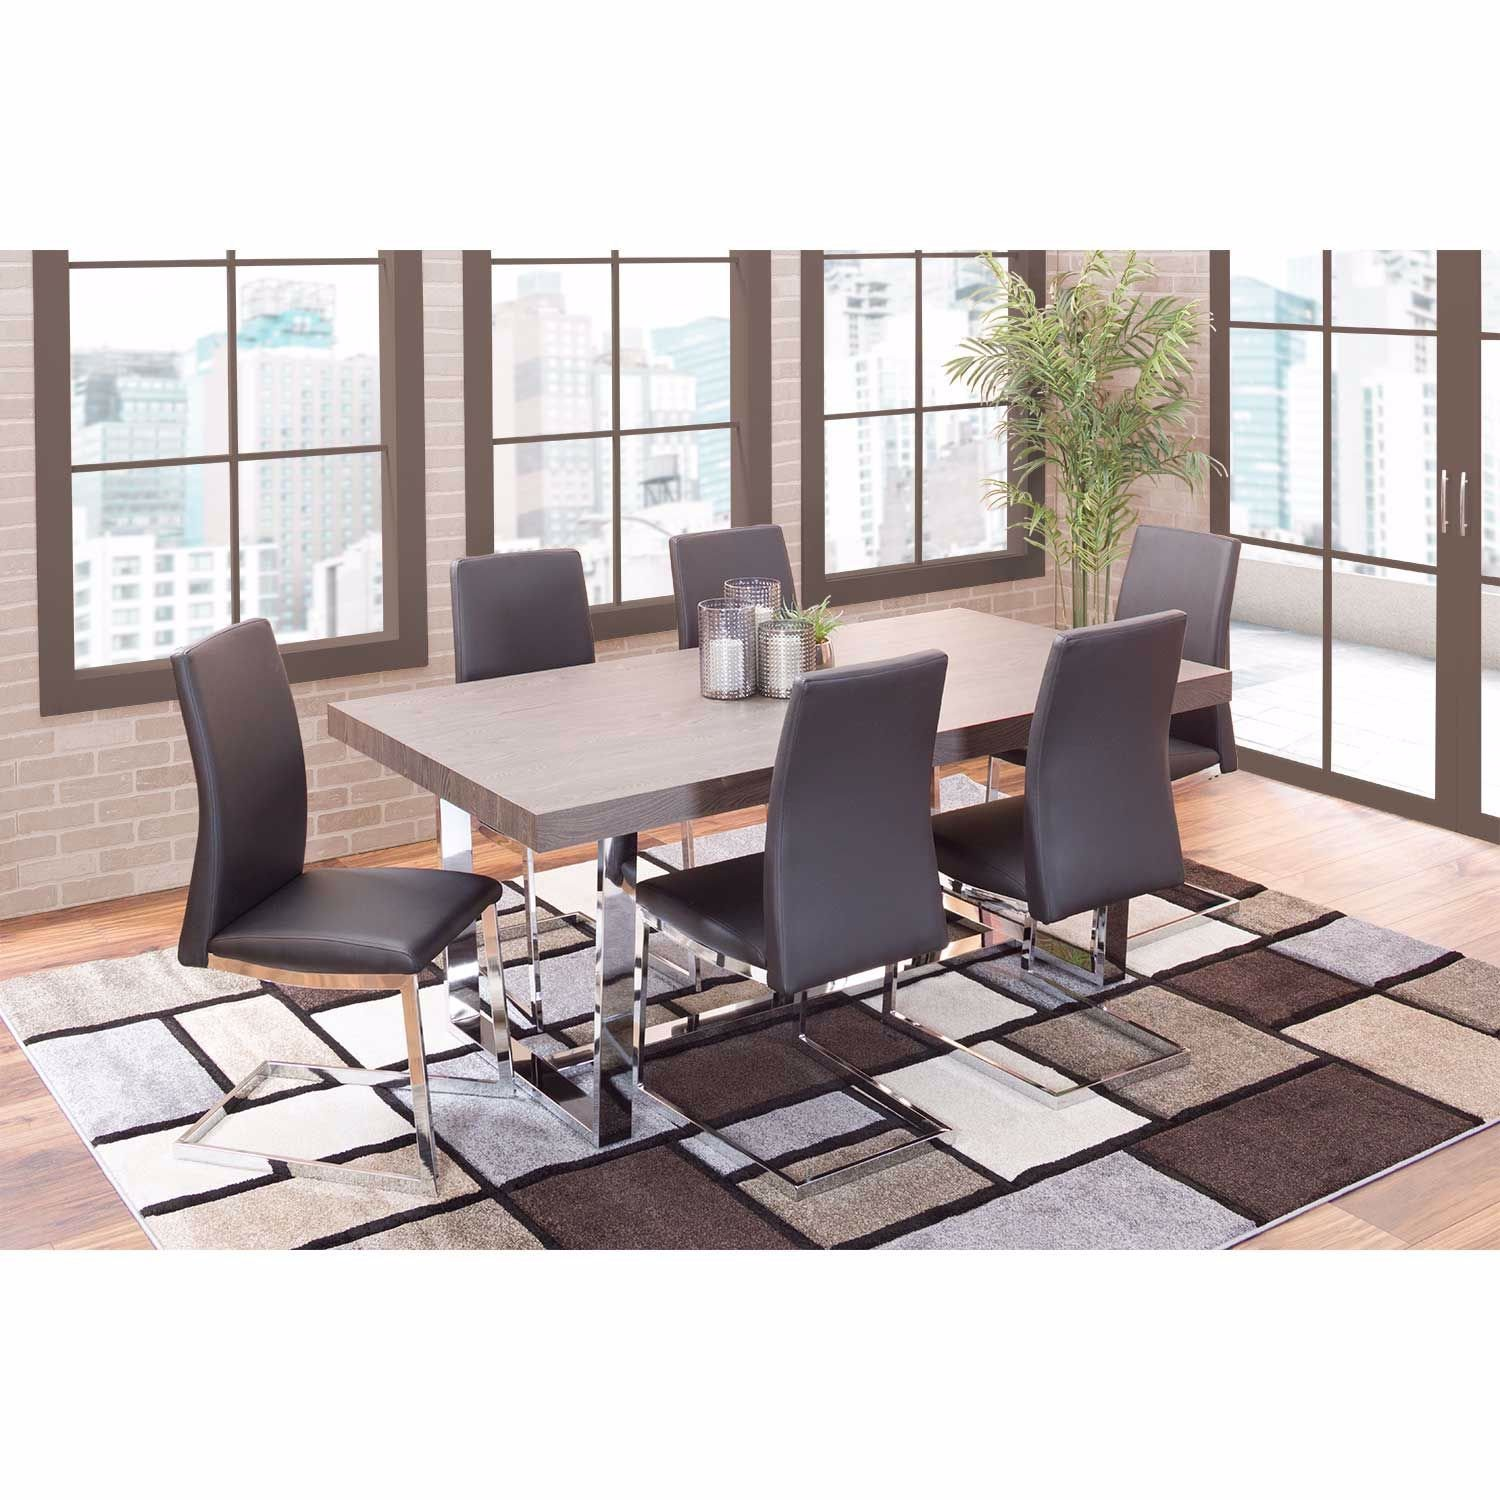 Picture of Nadia 7 Piece Dining Set